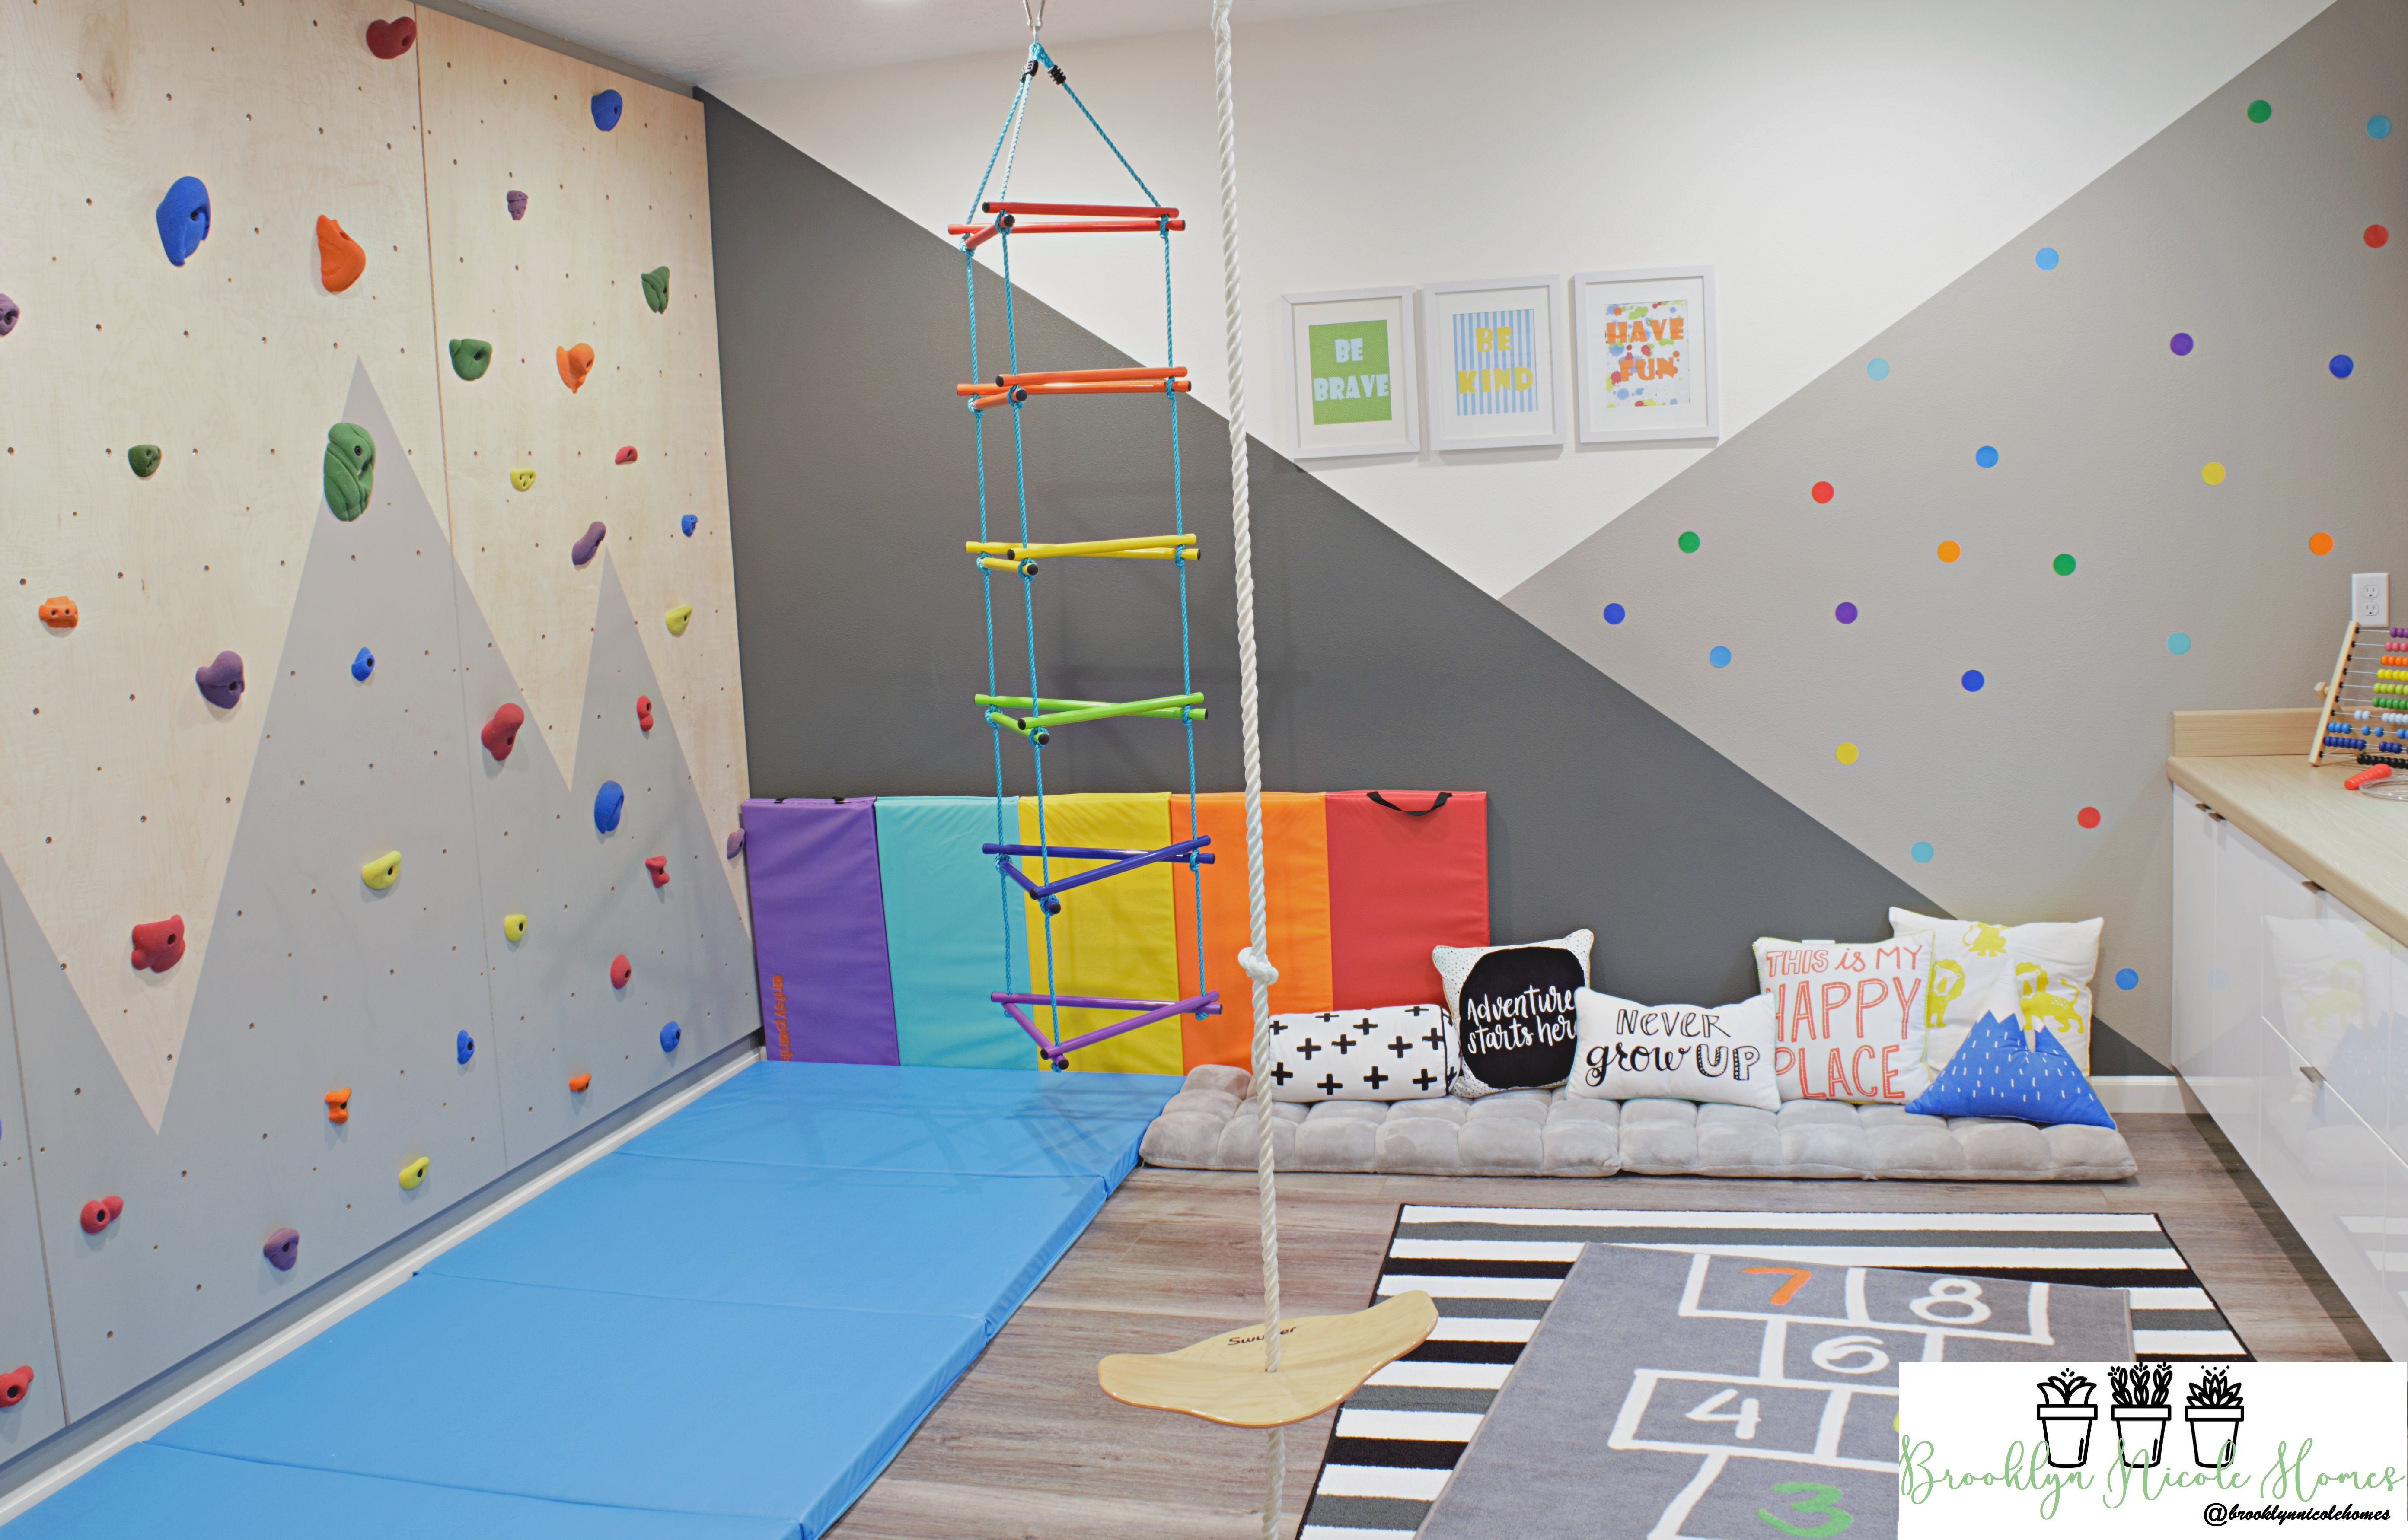 A Fun And Colorful Playroom With Indoor Climbing Wall, Swing